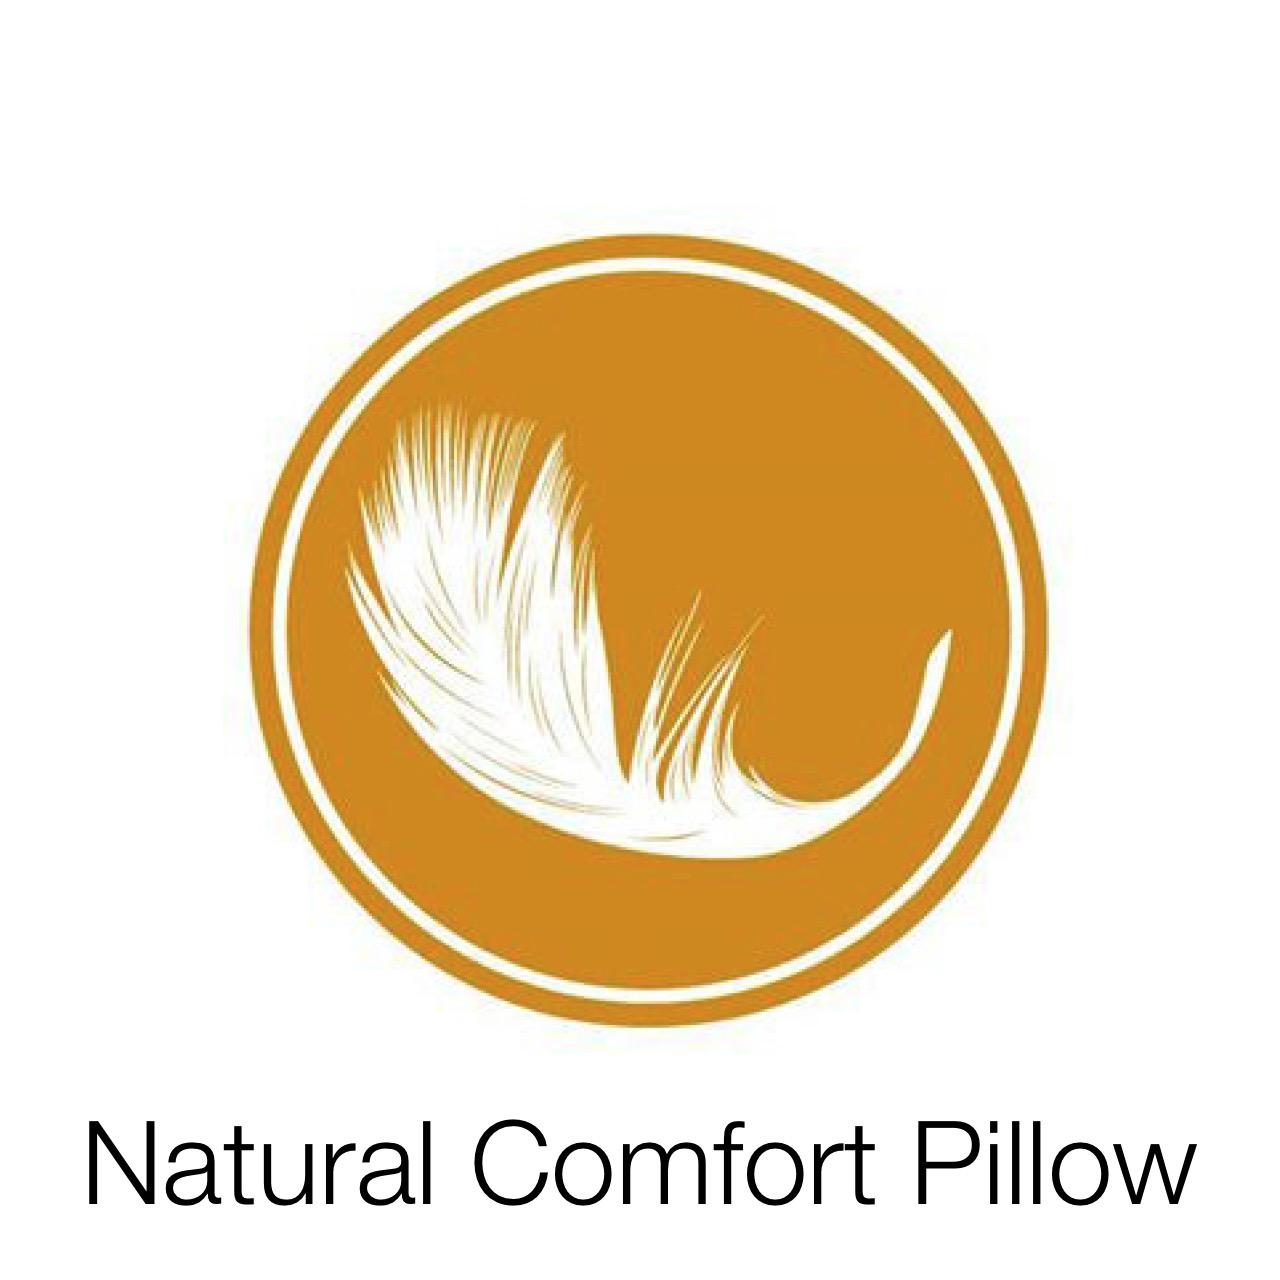 Natural Comfort Pillow Cuppa SEO Client